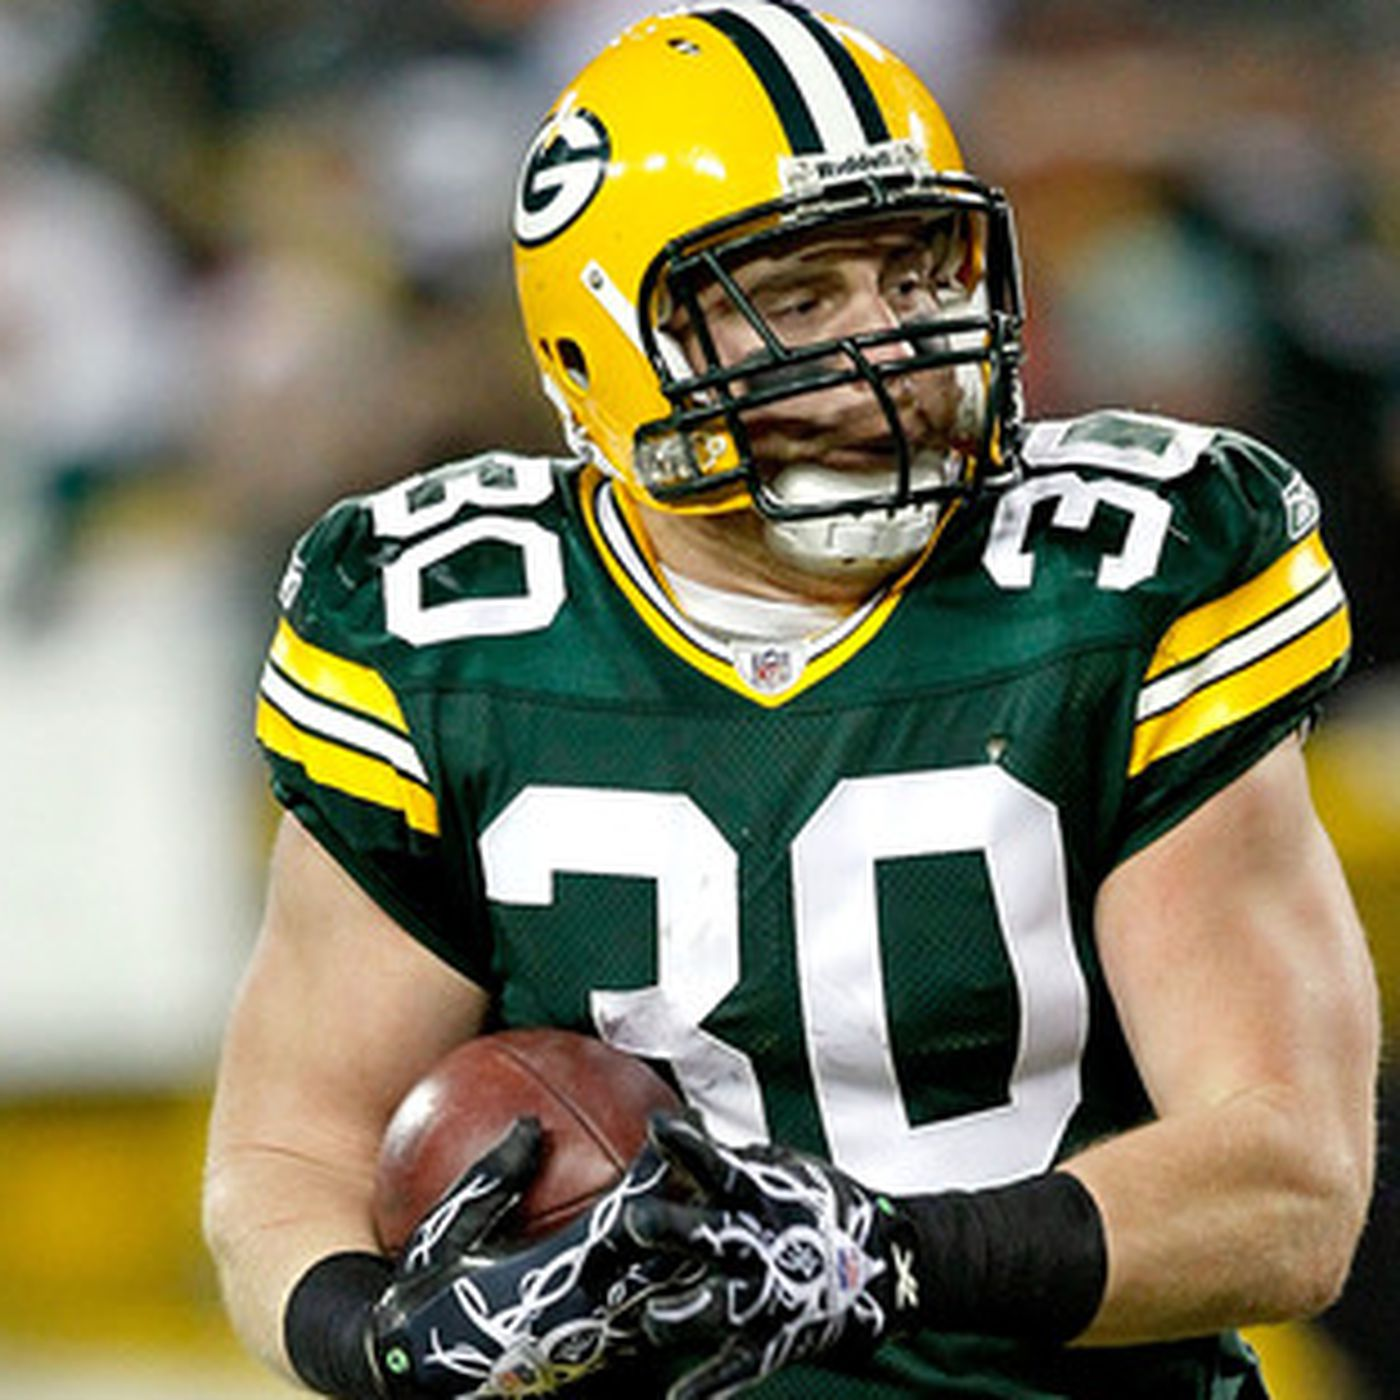 caa9d6956 Cheese Curds  Green Bay Packers News and Links for January 30